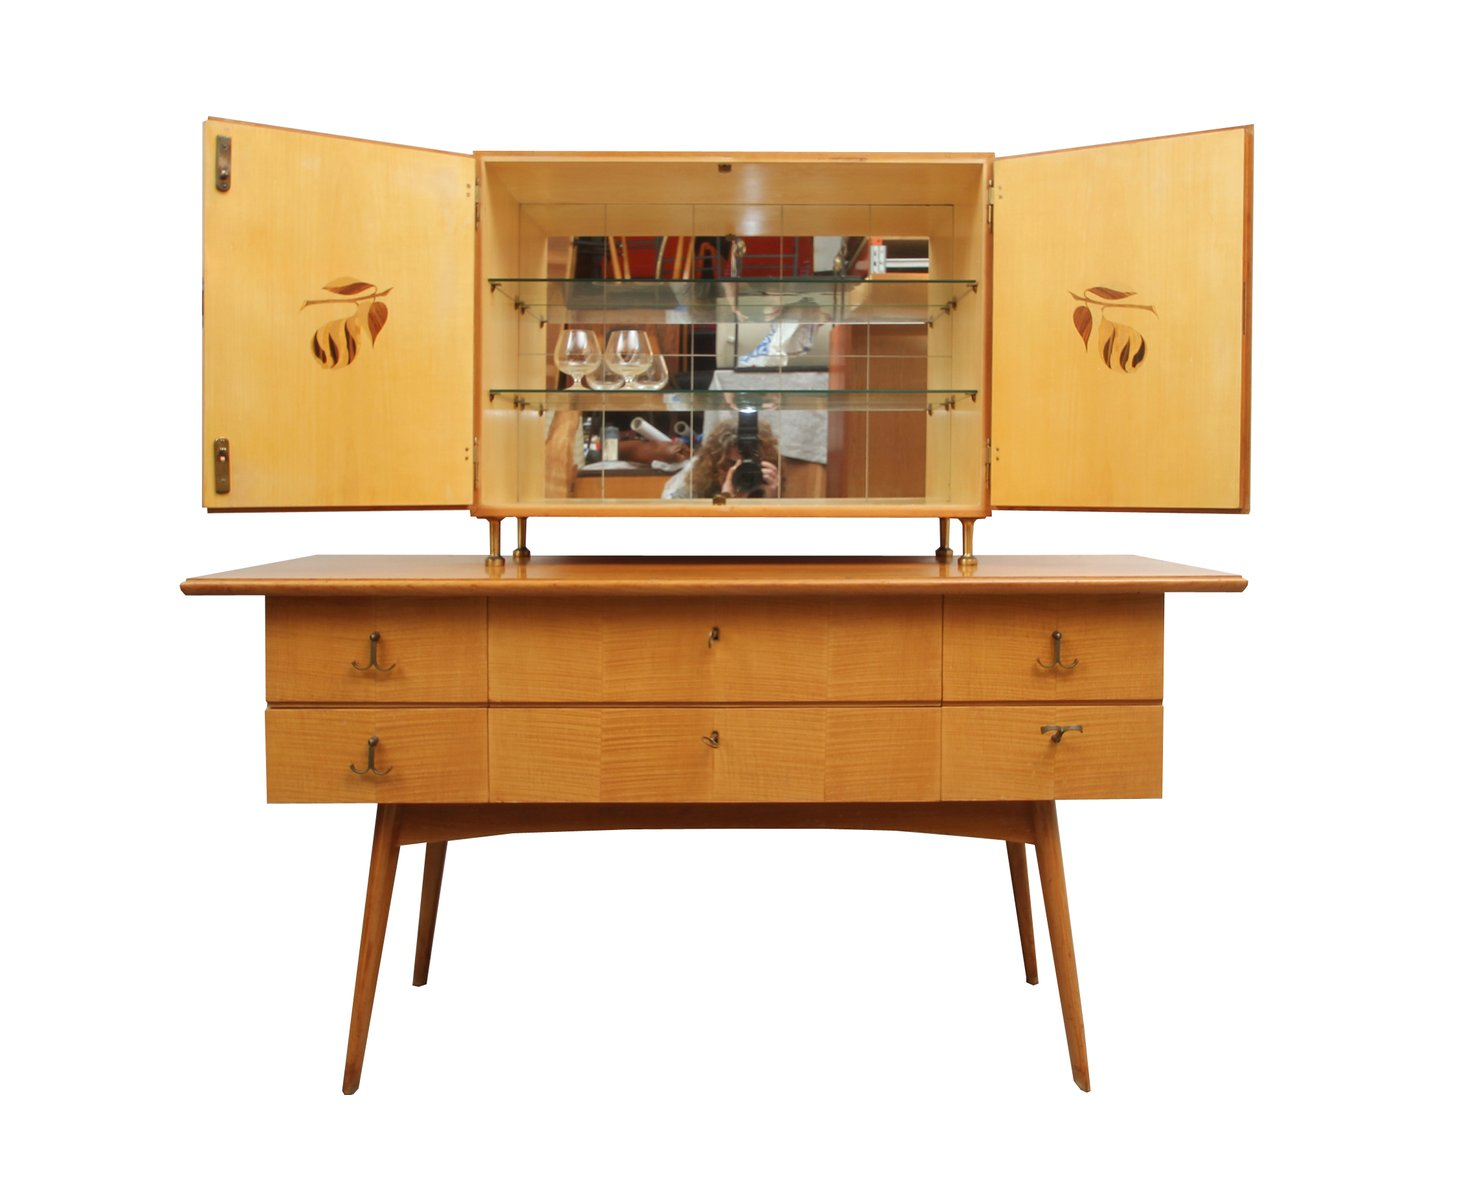 Cherry wood sideboard and bar cabinet s for sale at